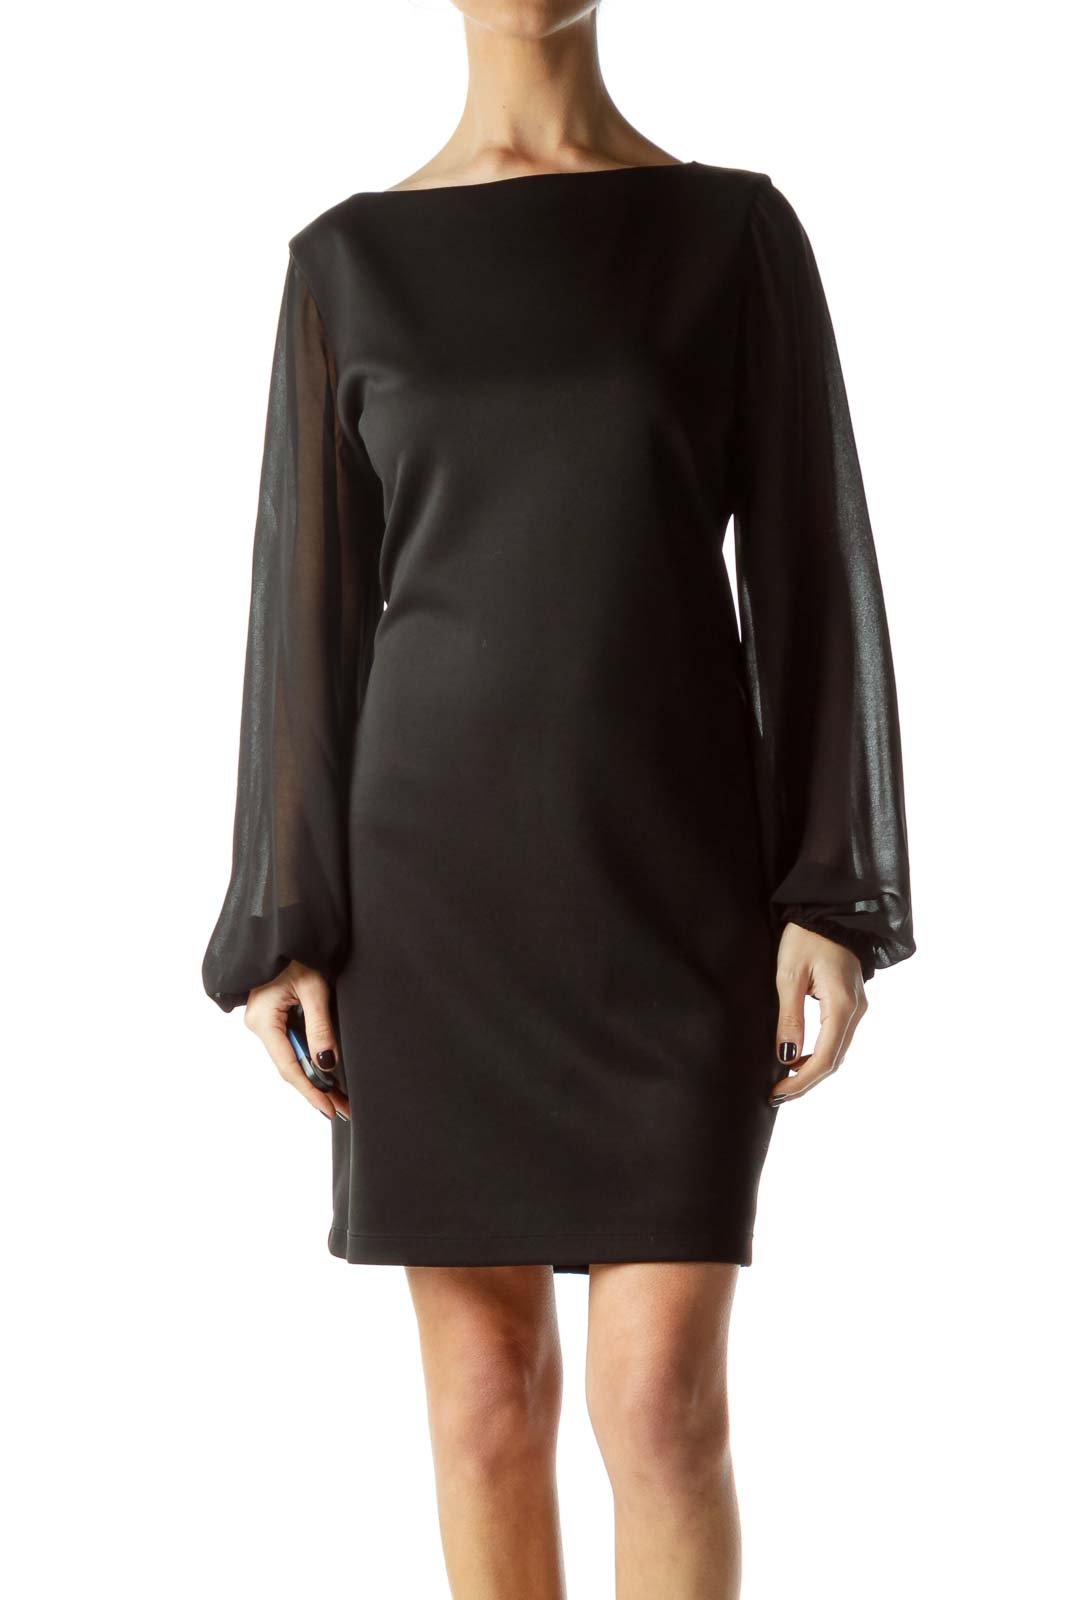 Black Dress with Long Sheer Sleeves Front